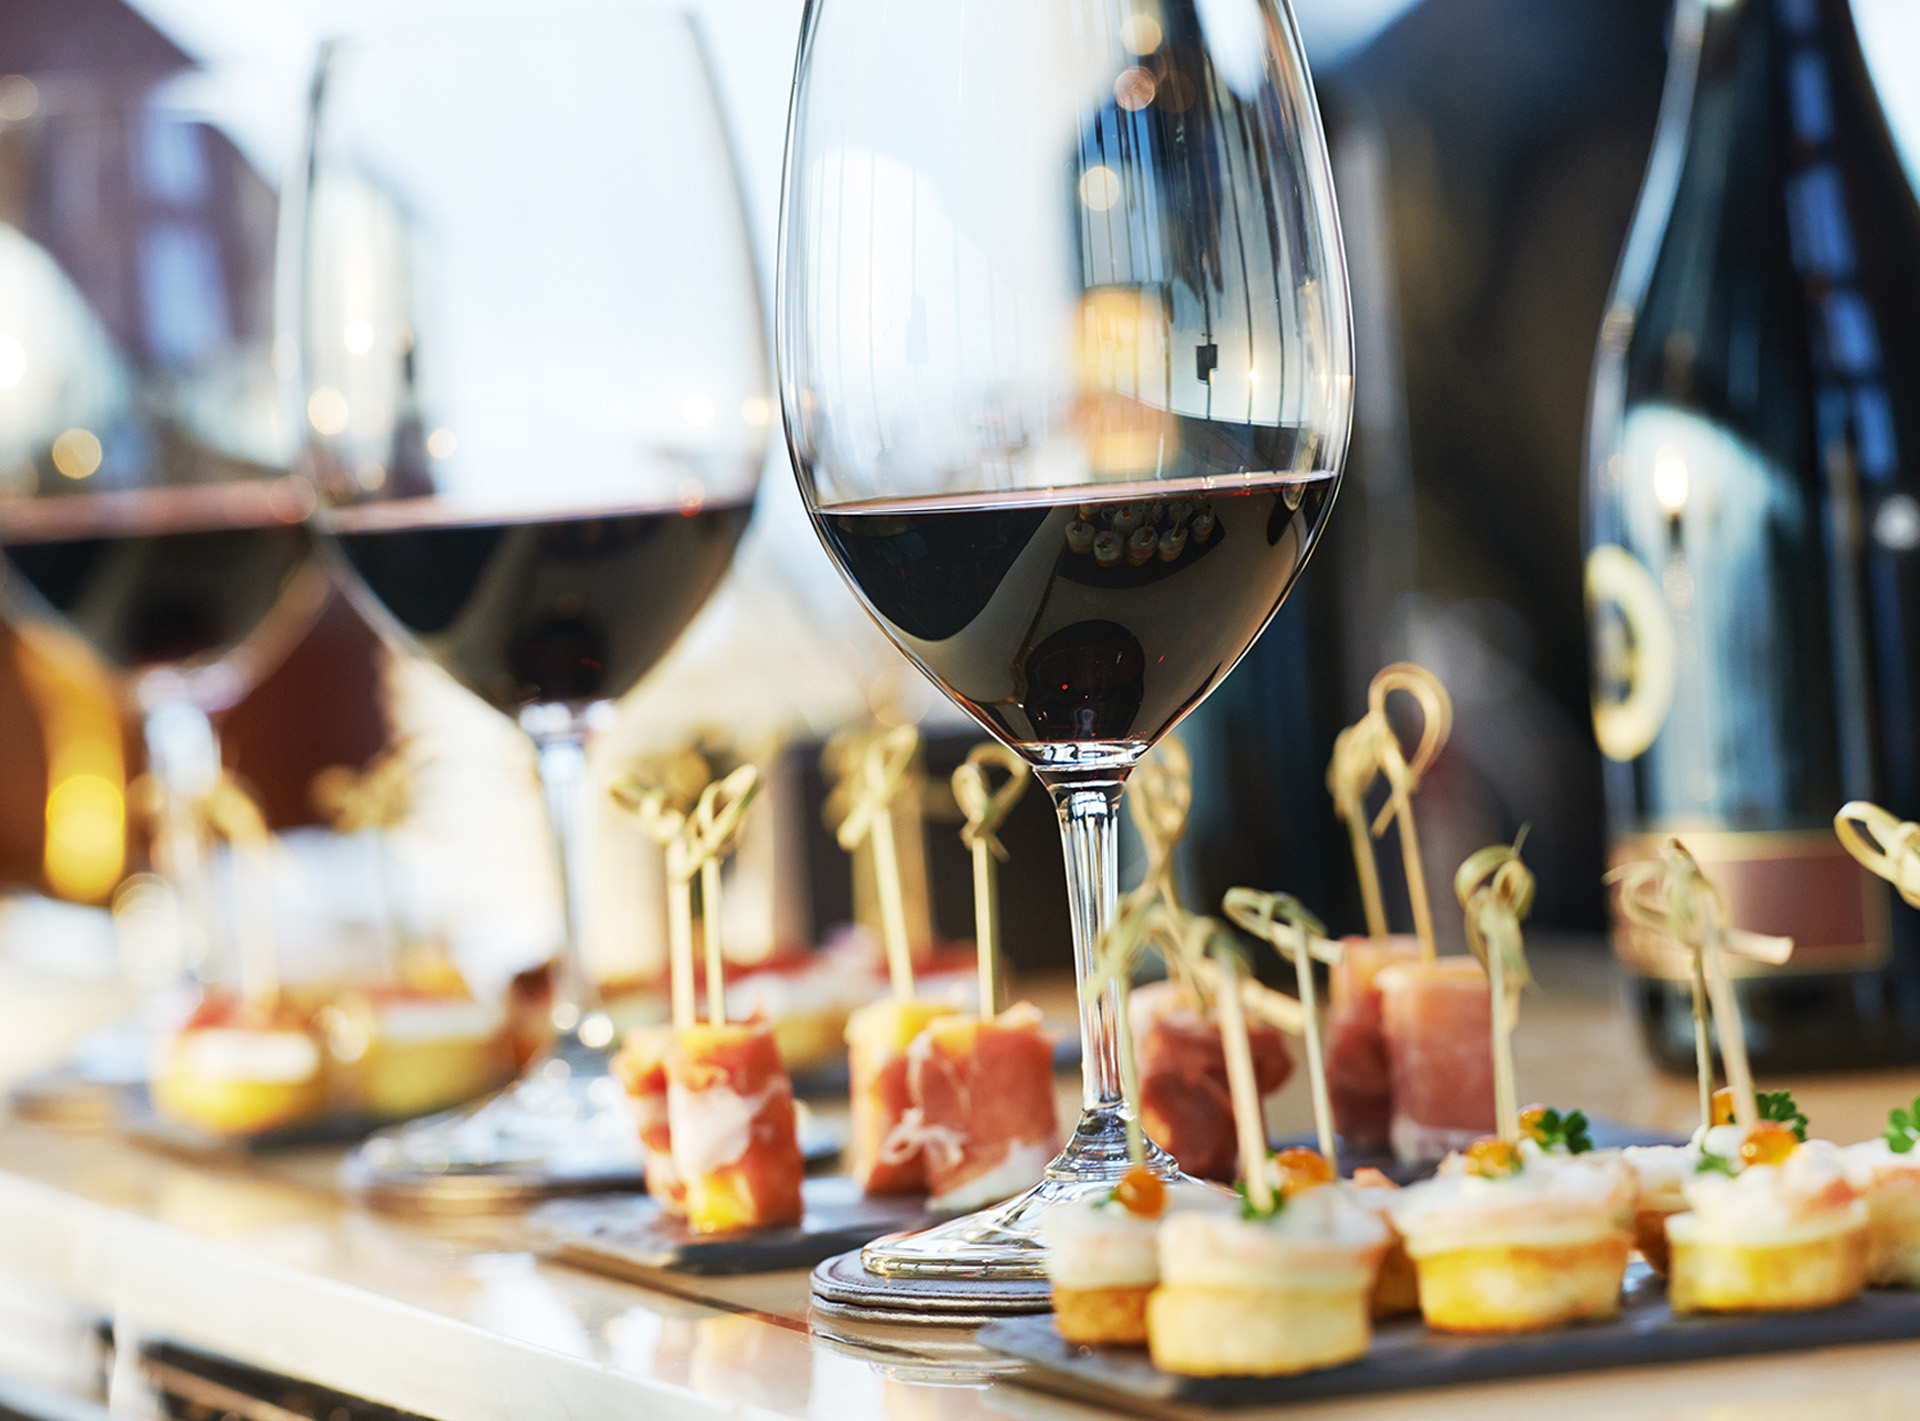 Wine glasses and appetizers on serving tray